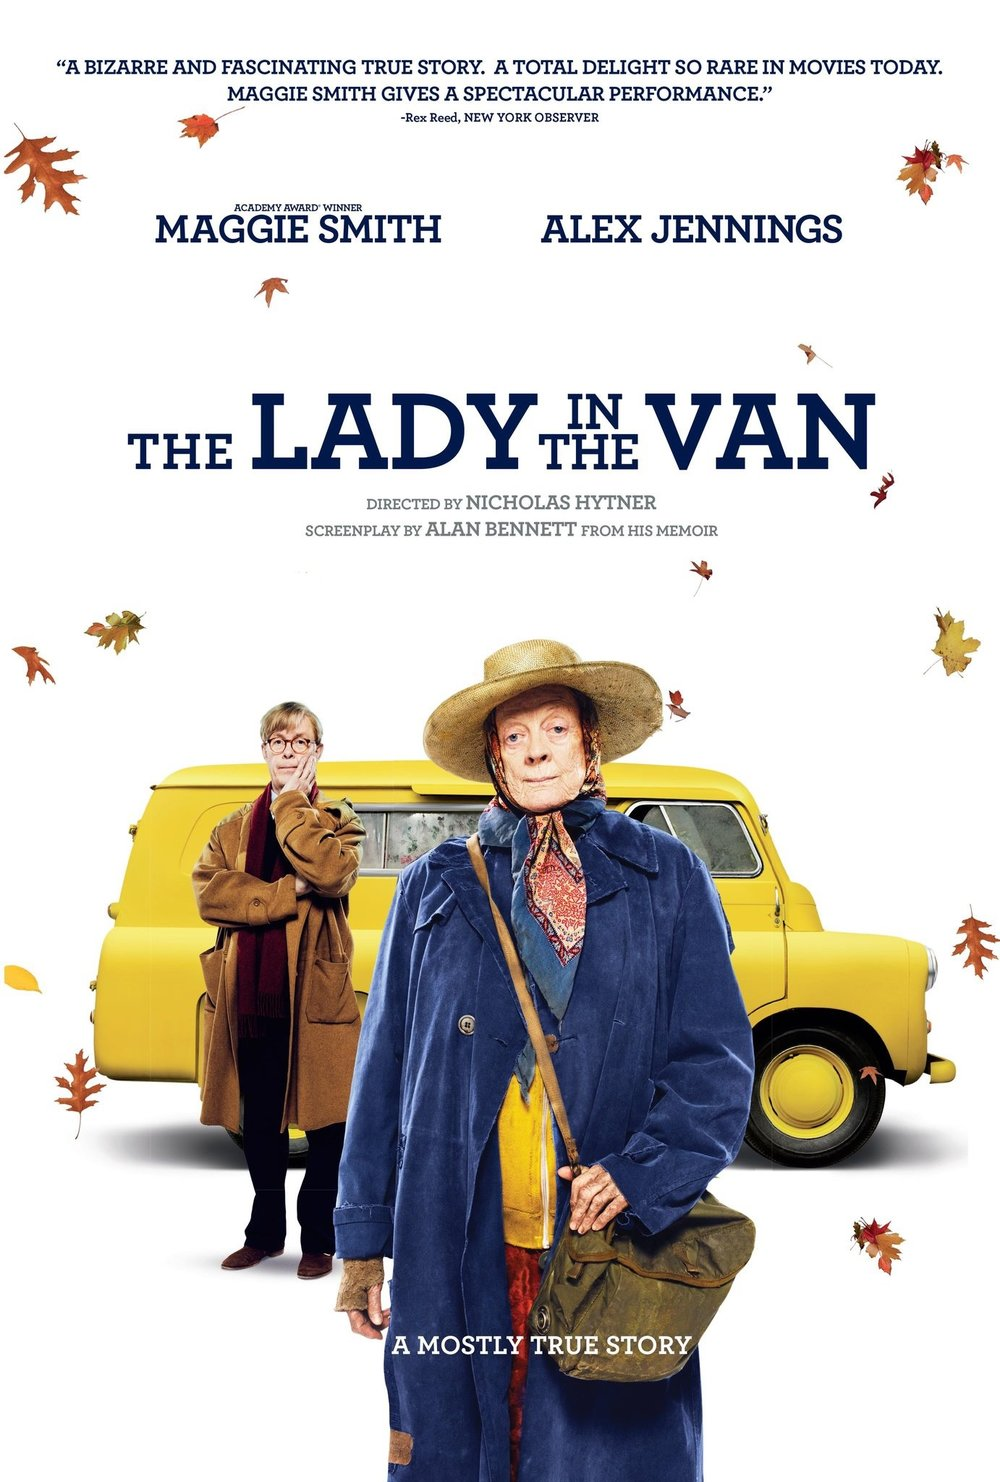 13 The-Lady-in-the-Van-Poster-Maggie-Smith.jpg